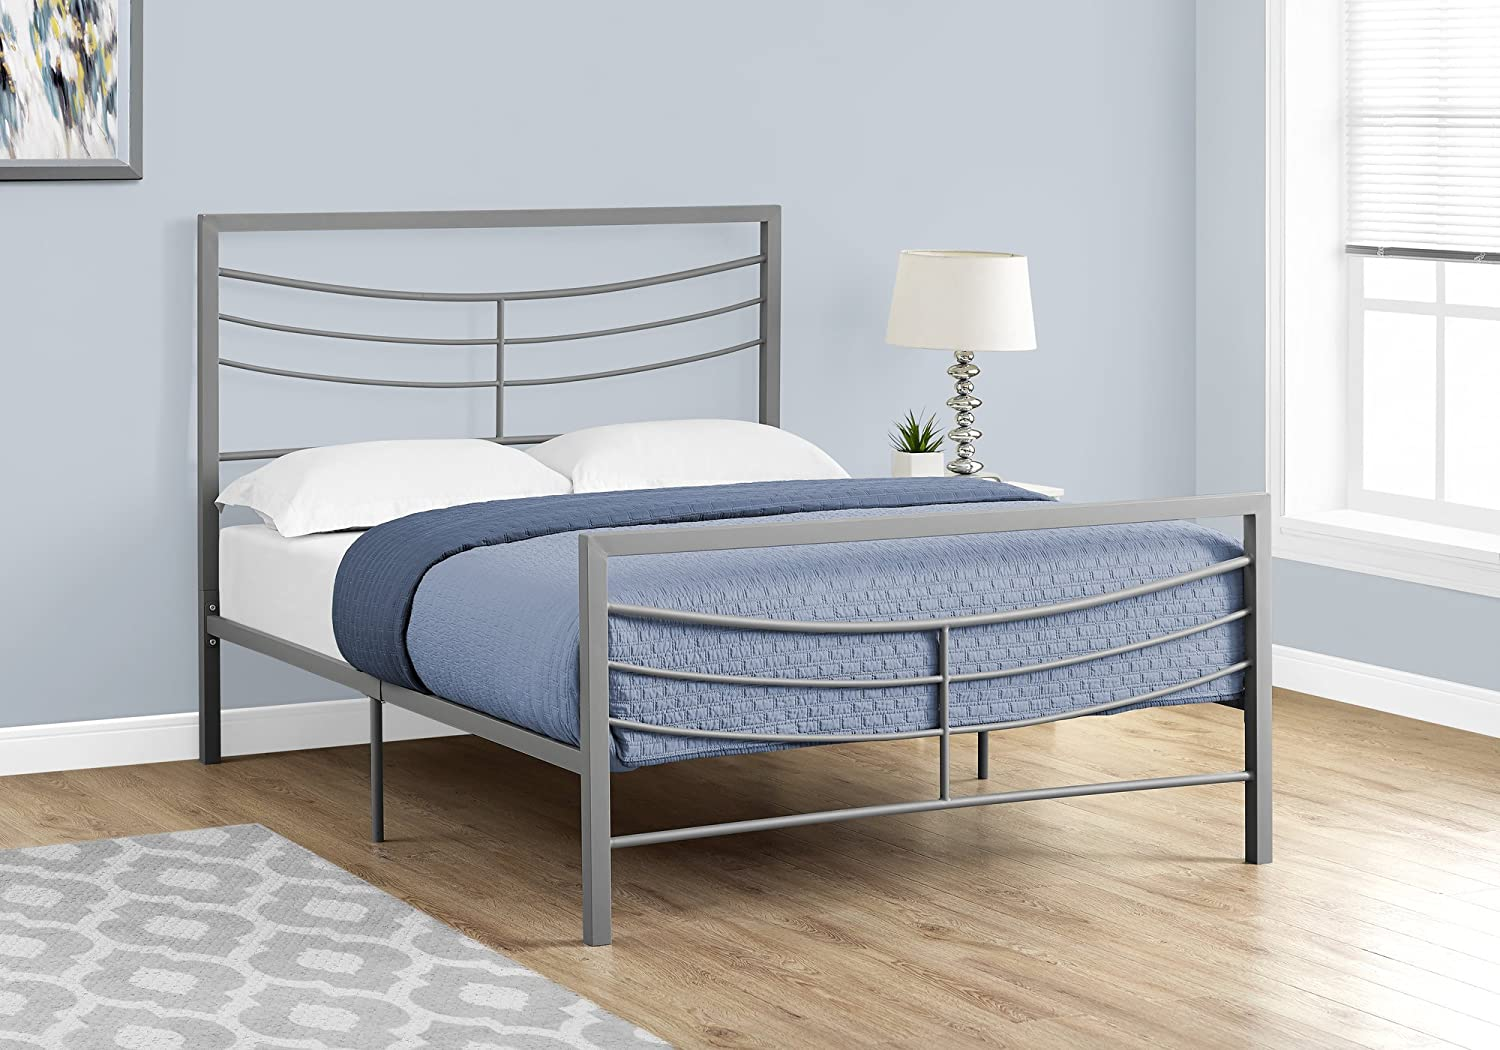 Monarch Specialties Bed - Full Size Silver Metal Frame only